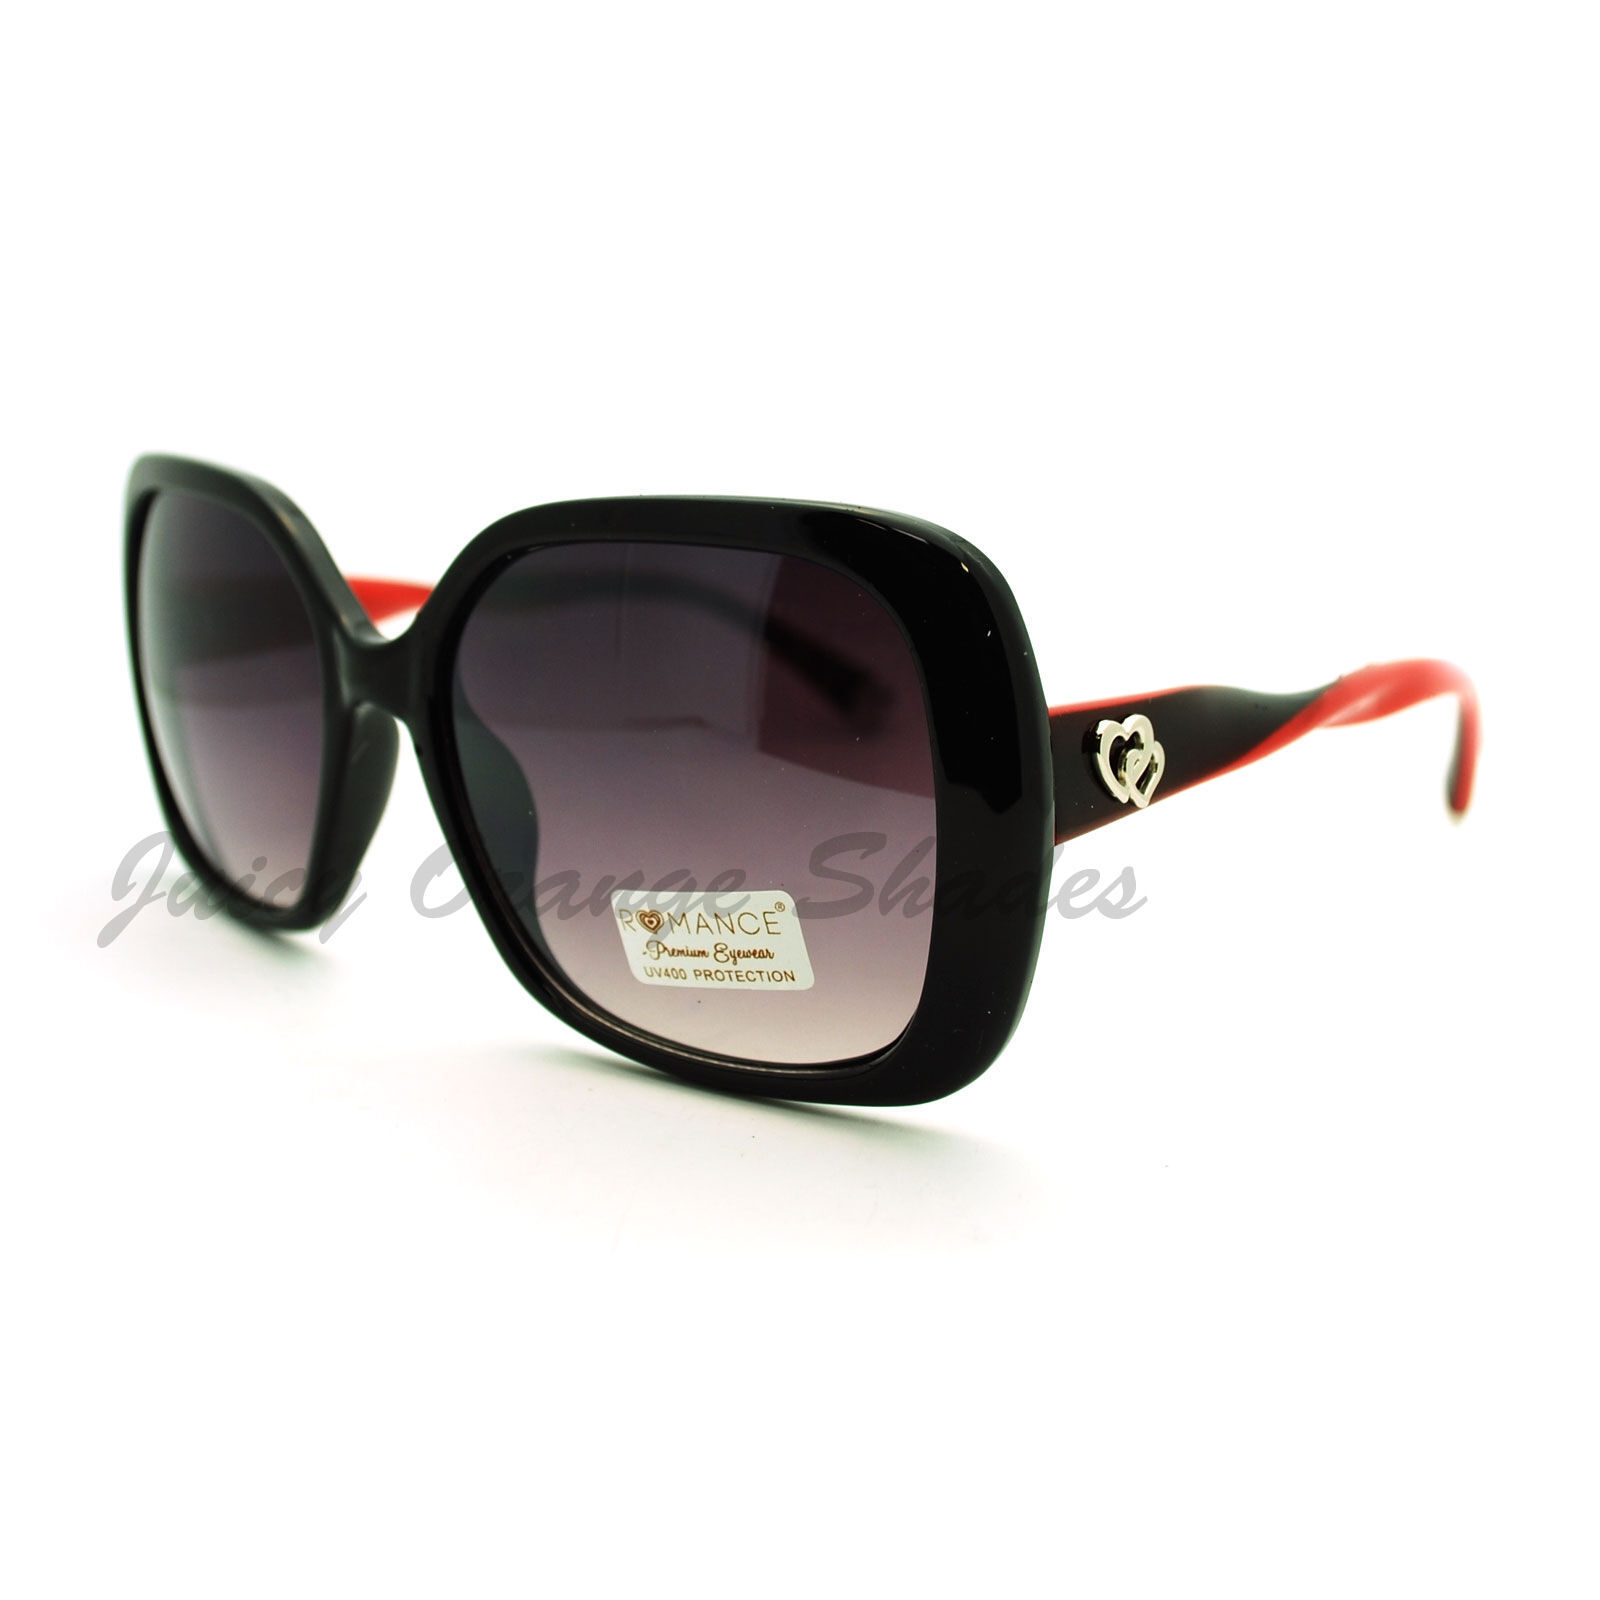 Women's Square Frame Sunglasses Twisted Design Heart Tip